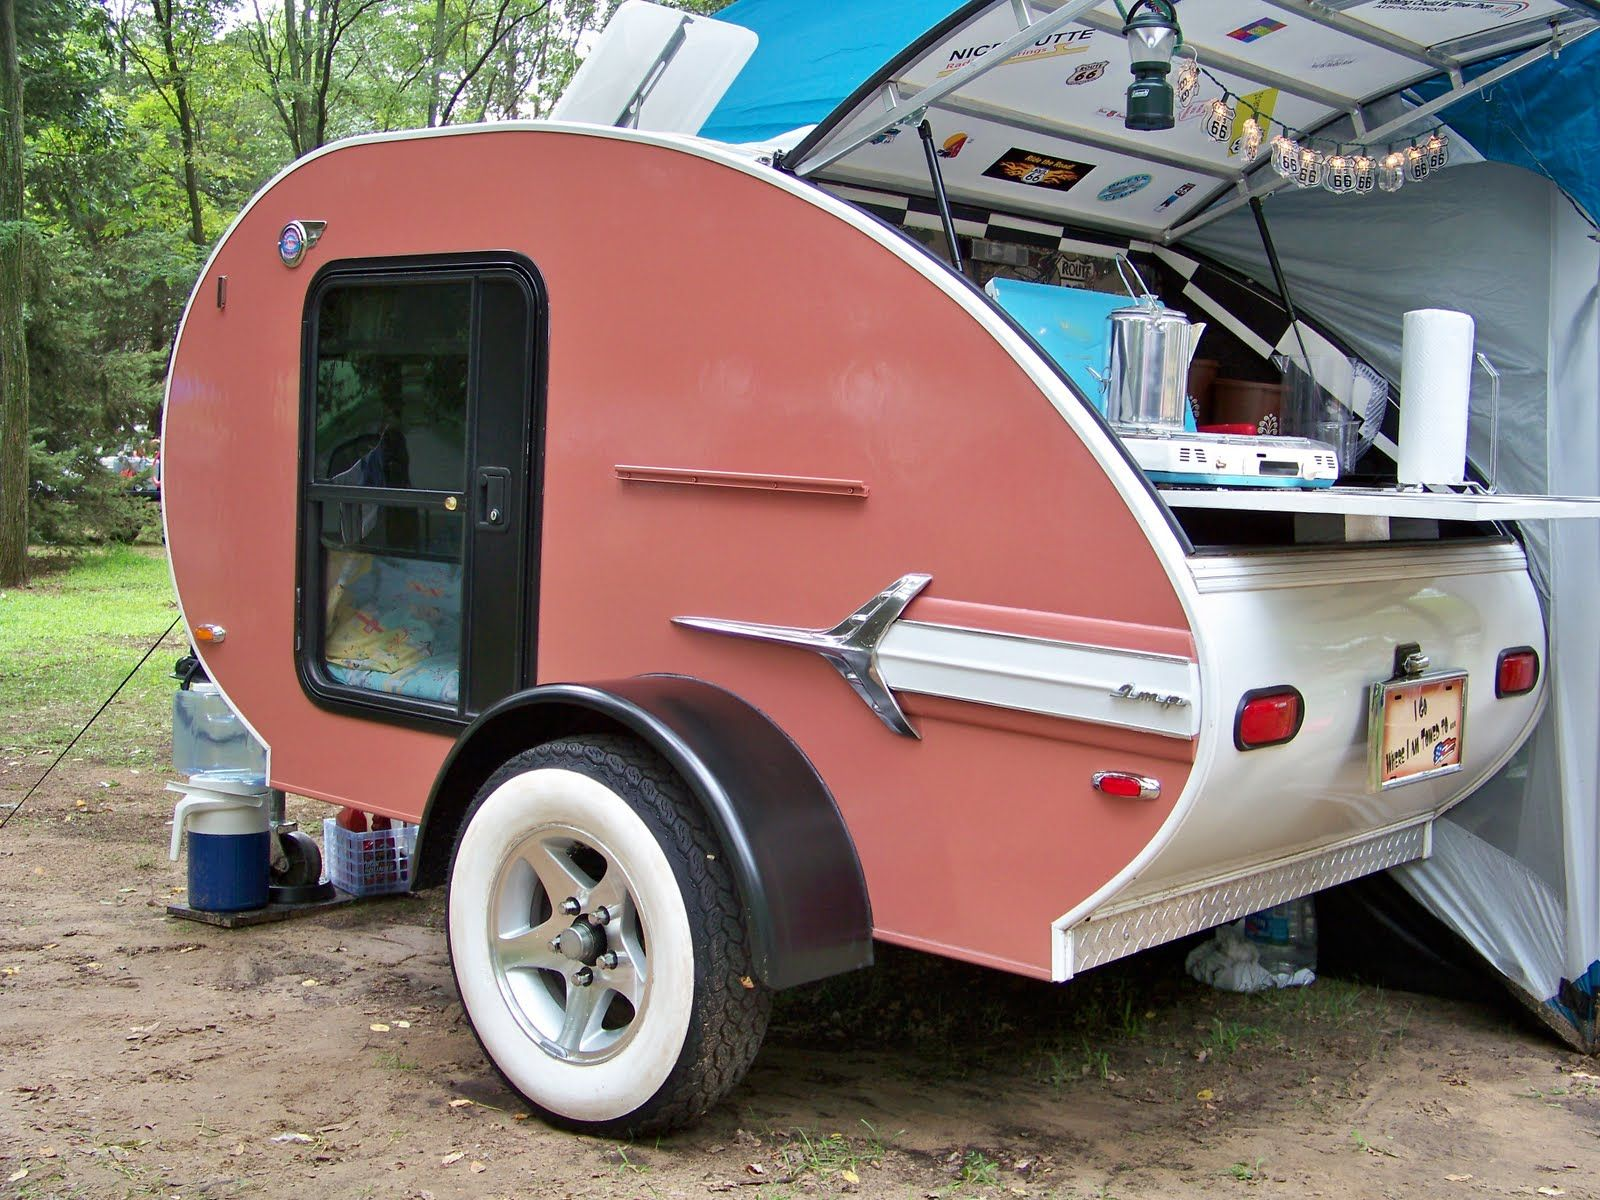 Vintage Teardrop TrailerResearch for possible future project